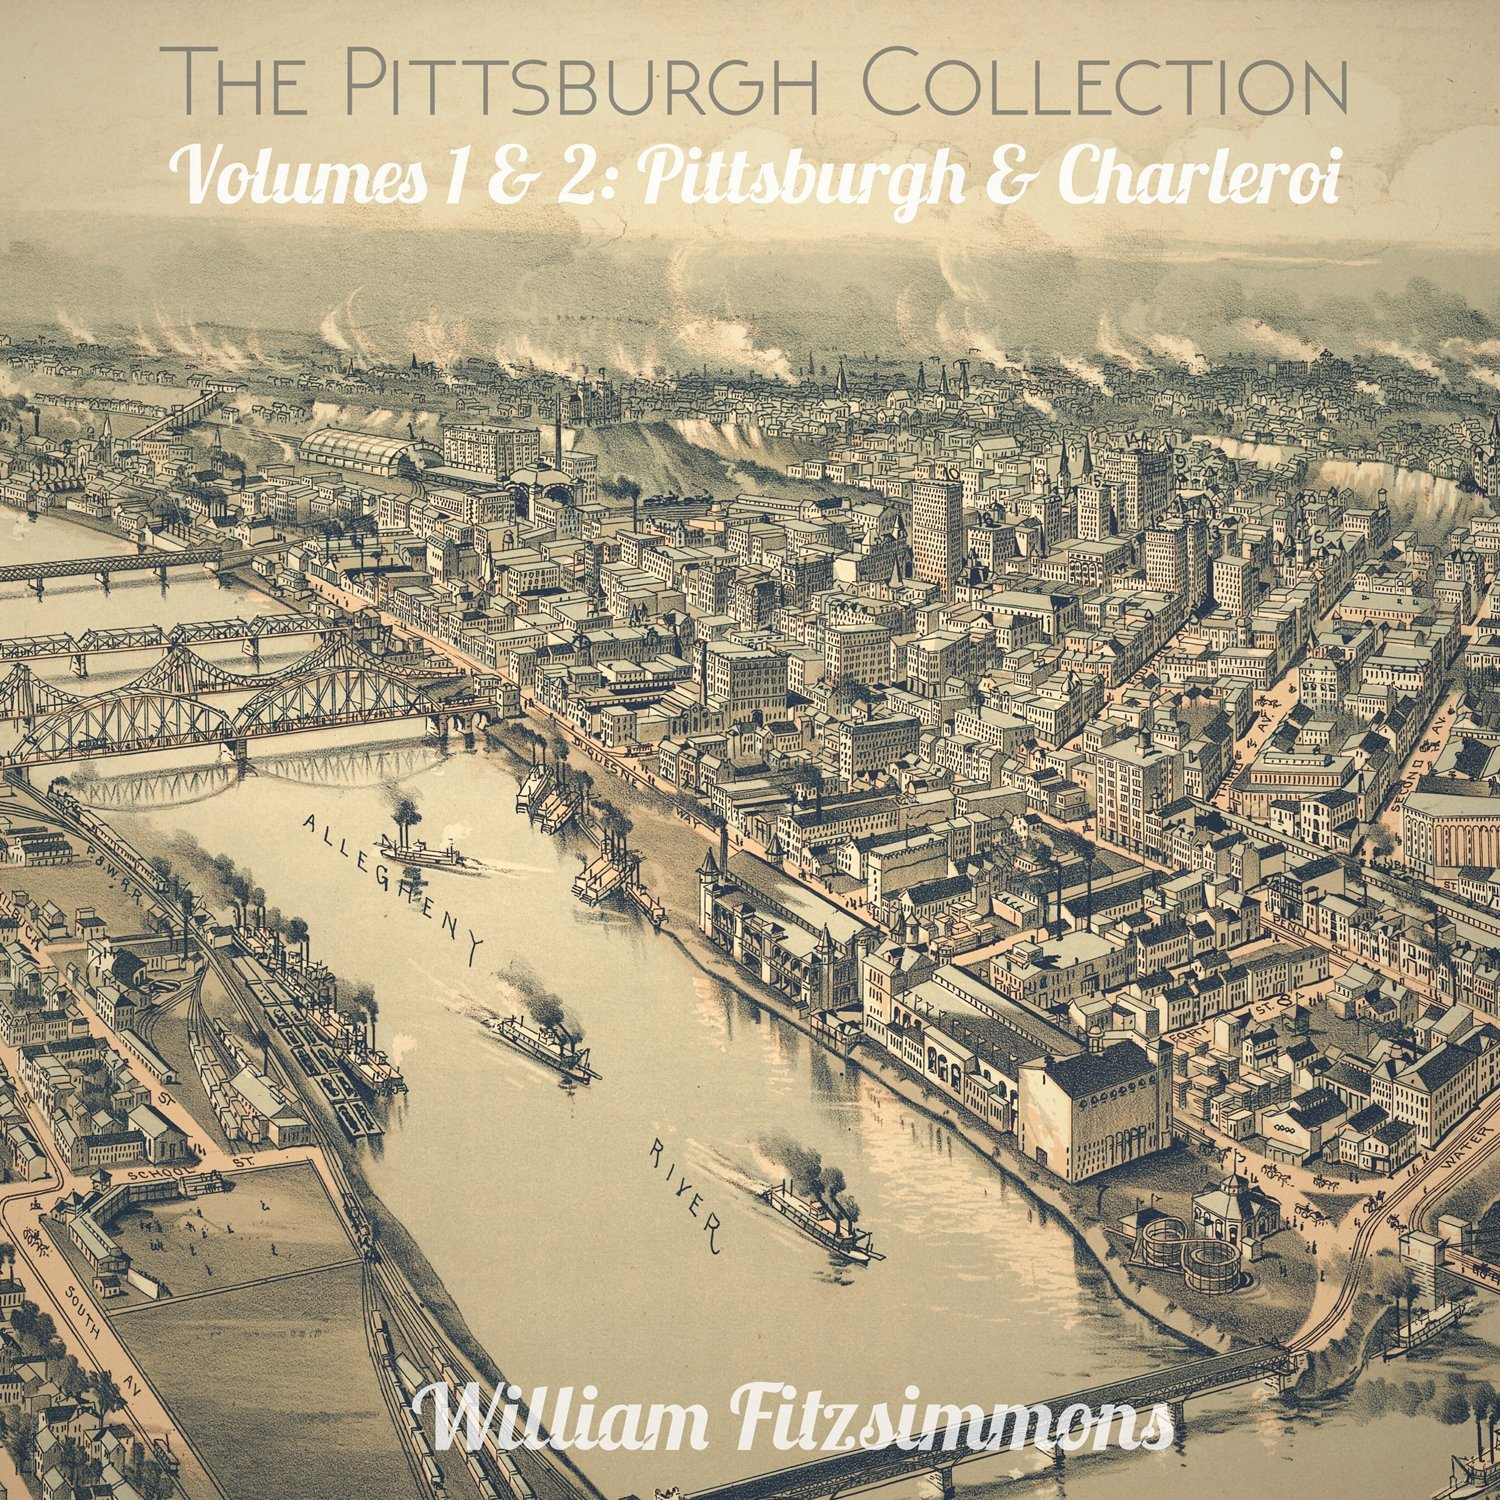 William Fitzsimmons - The Pittsburgh Collection: Volumes 1 & 2: Pittsburgh & Charleroi [Vinyl]